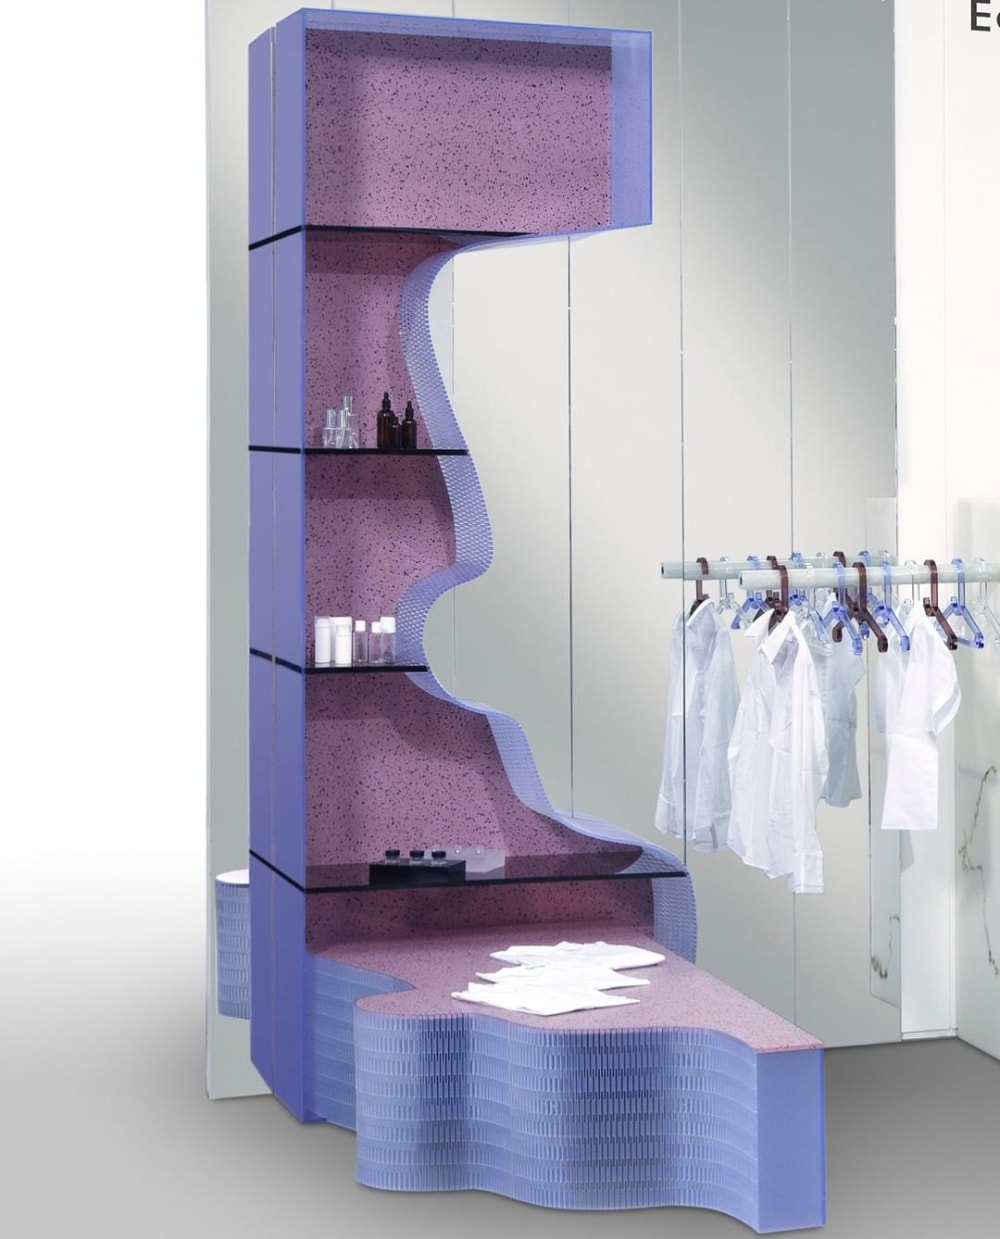 "A retail shelving system made of colourful sheets of recycled plastic.<span class=""sr-only""> (opened in a new window/tab)</span>"